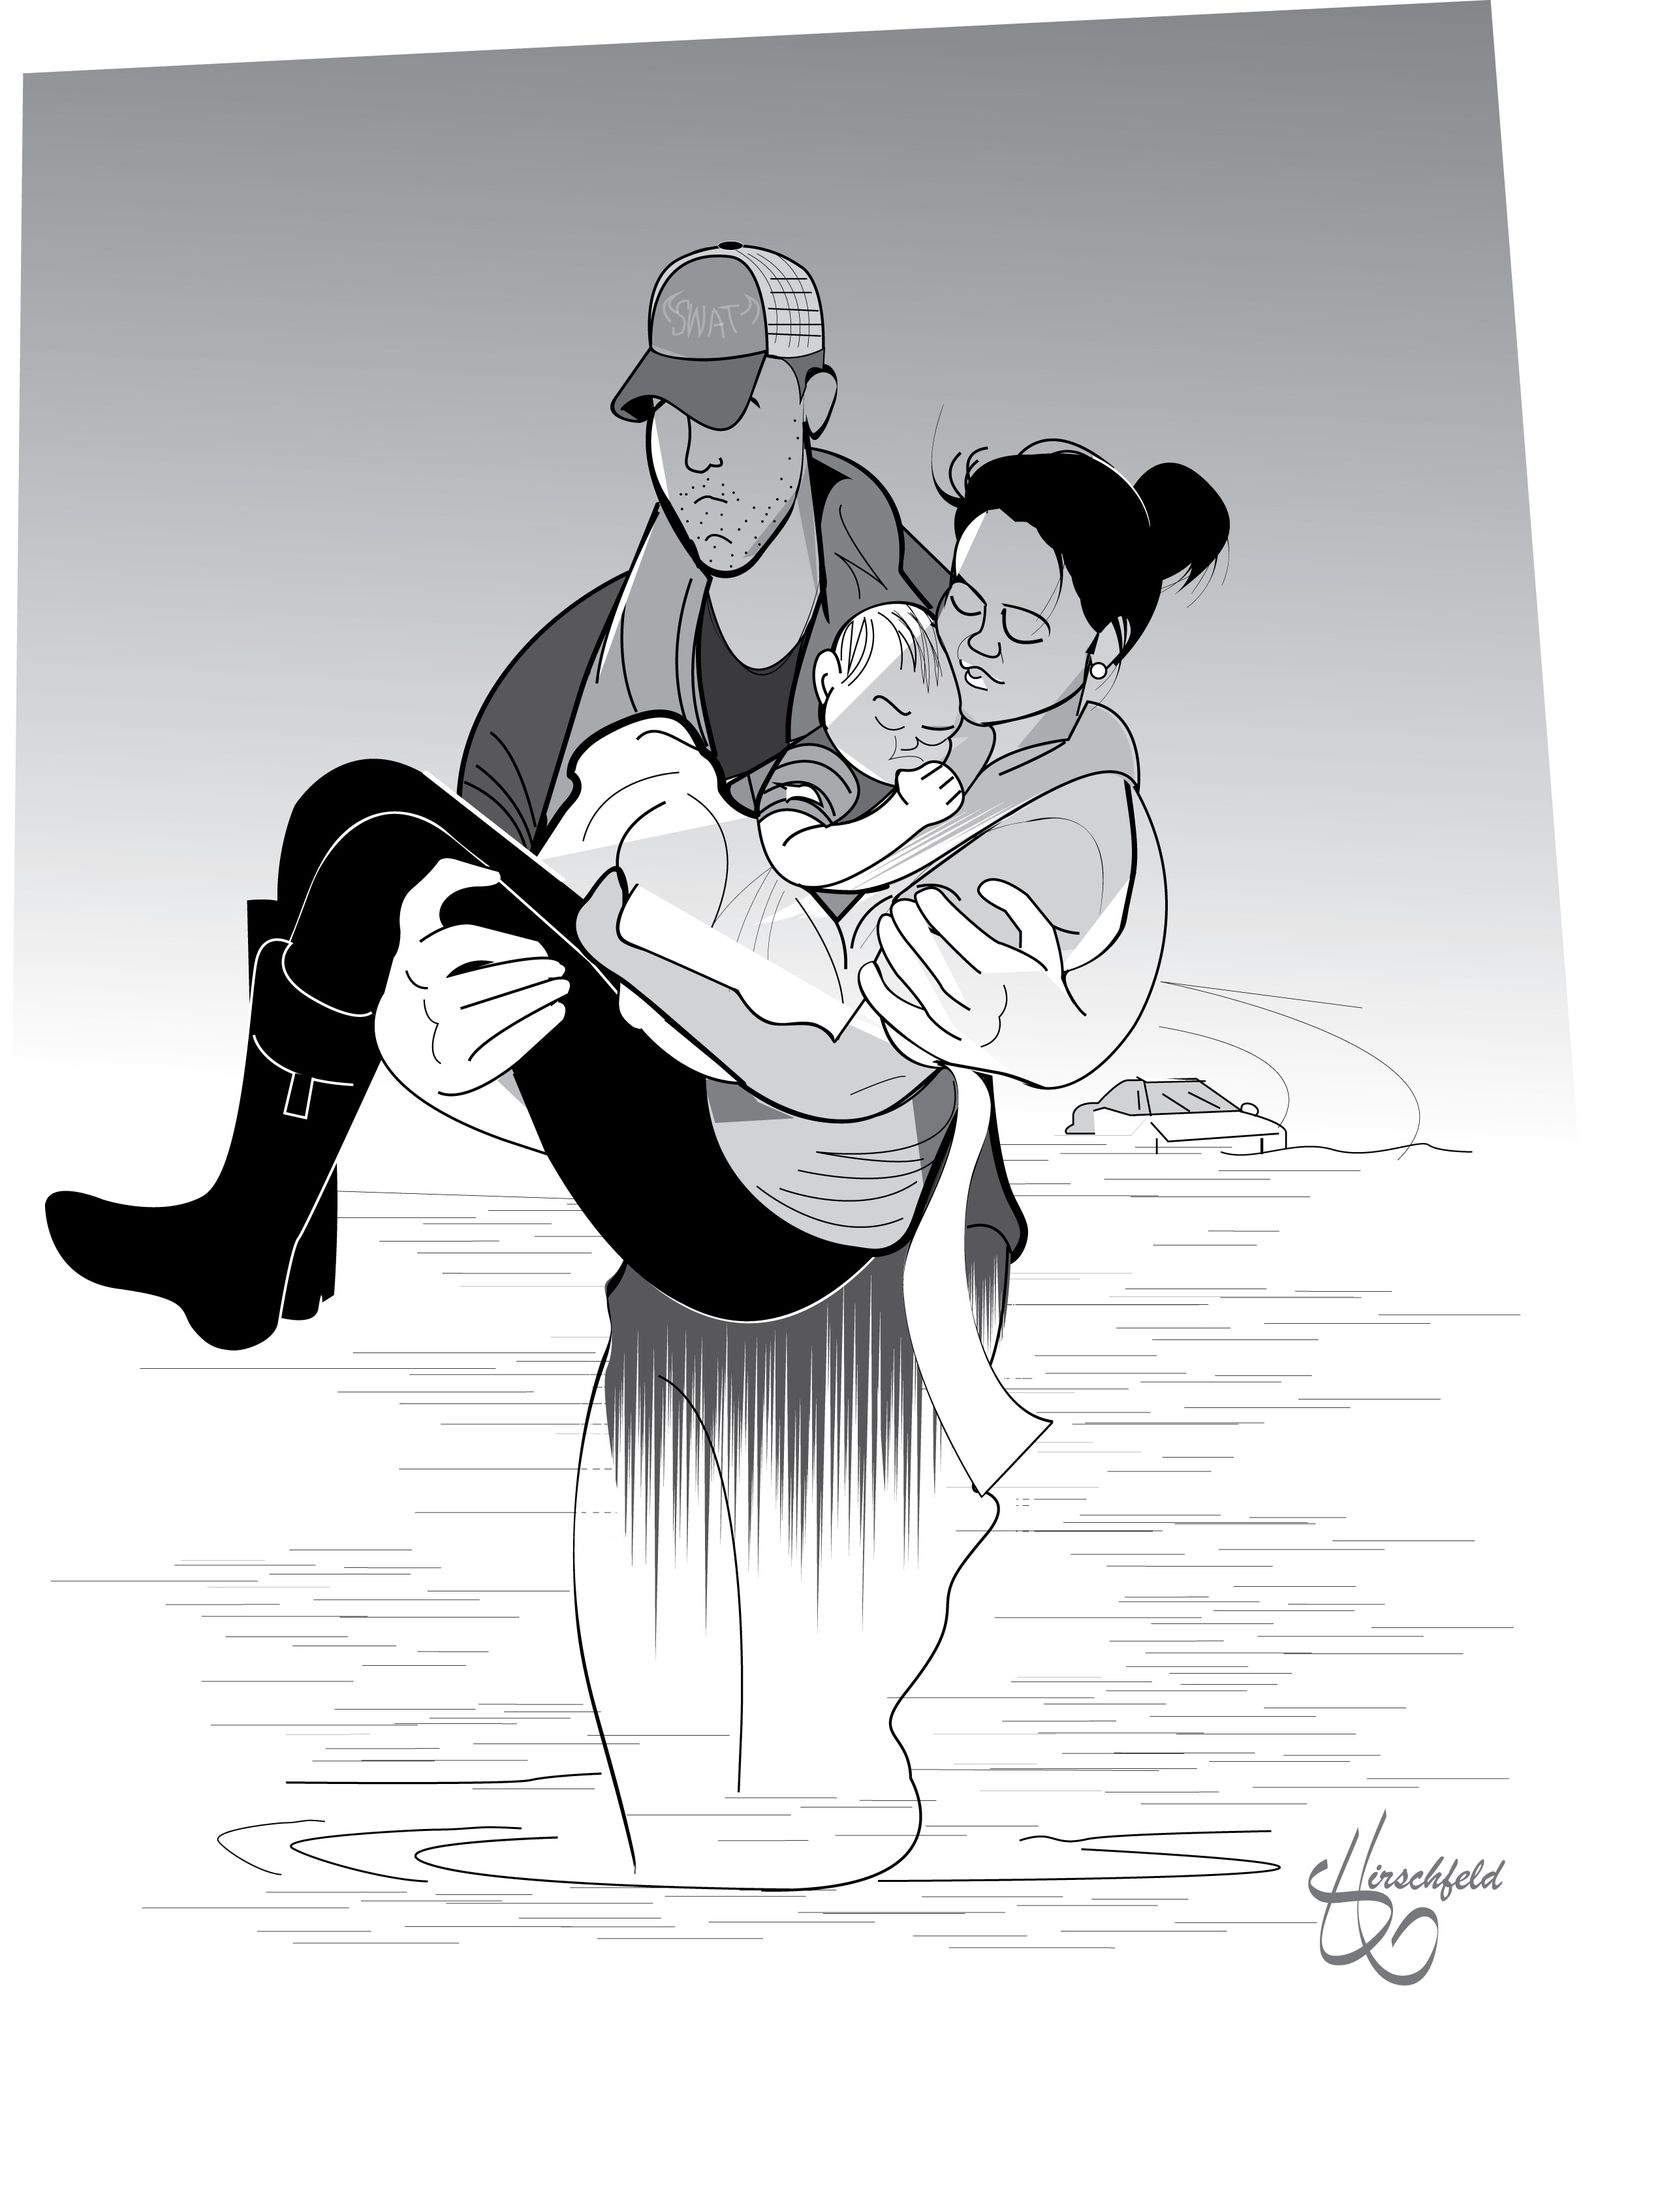 Hollywood illustrator Matt Hirschfeld created this image of a photo taken of Cathy Pham and son Aidan being rescued by Houston SWAT Officer Daryl Hudeck.